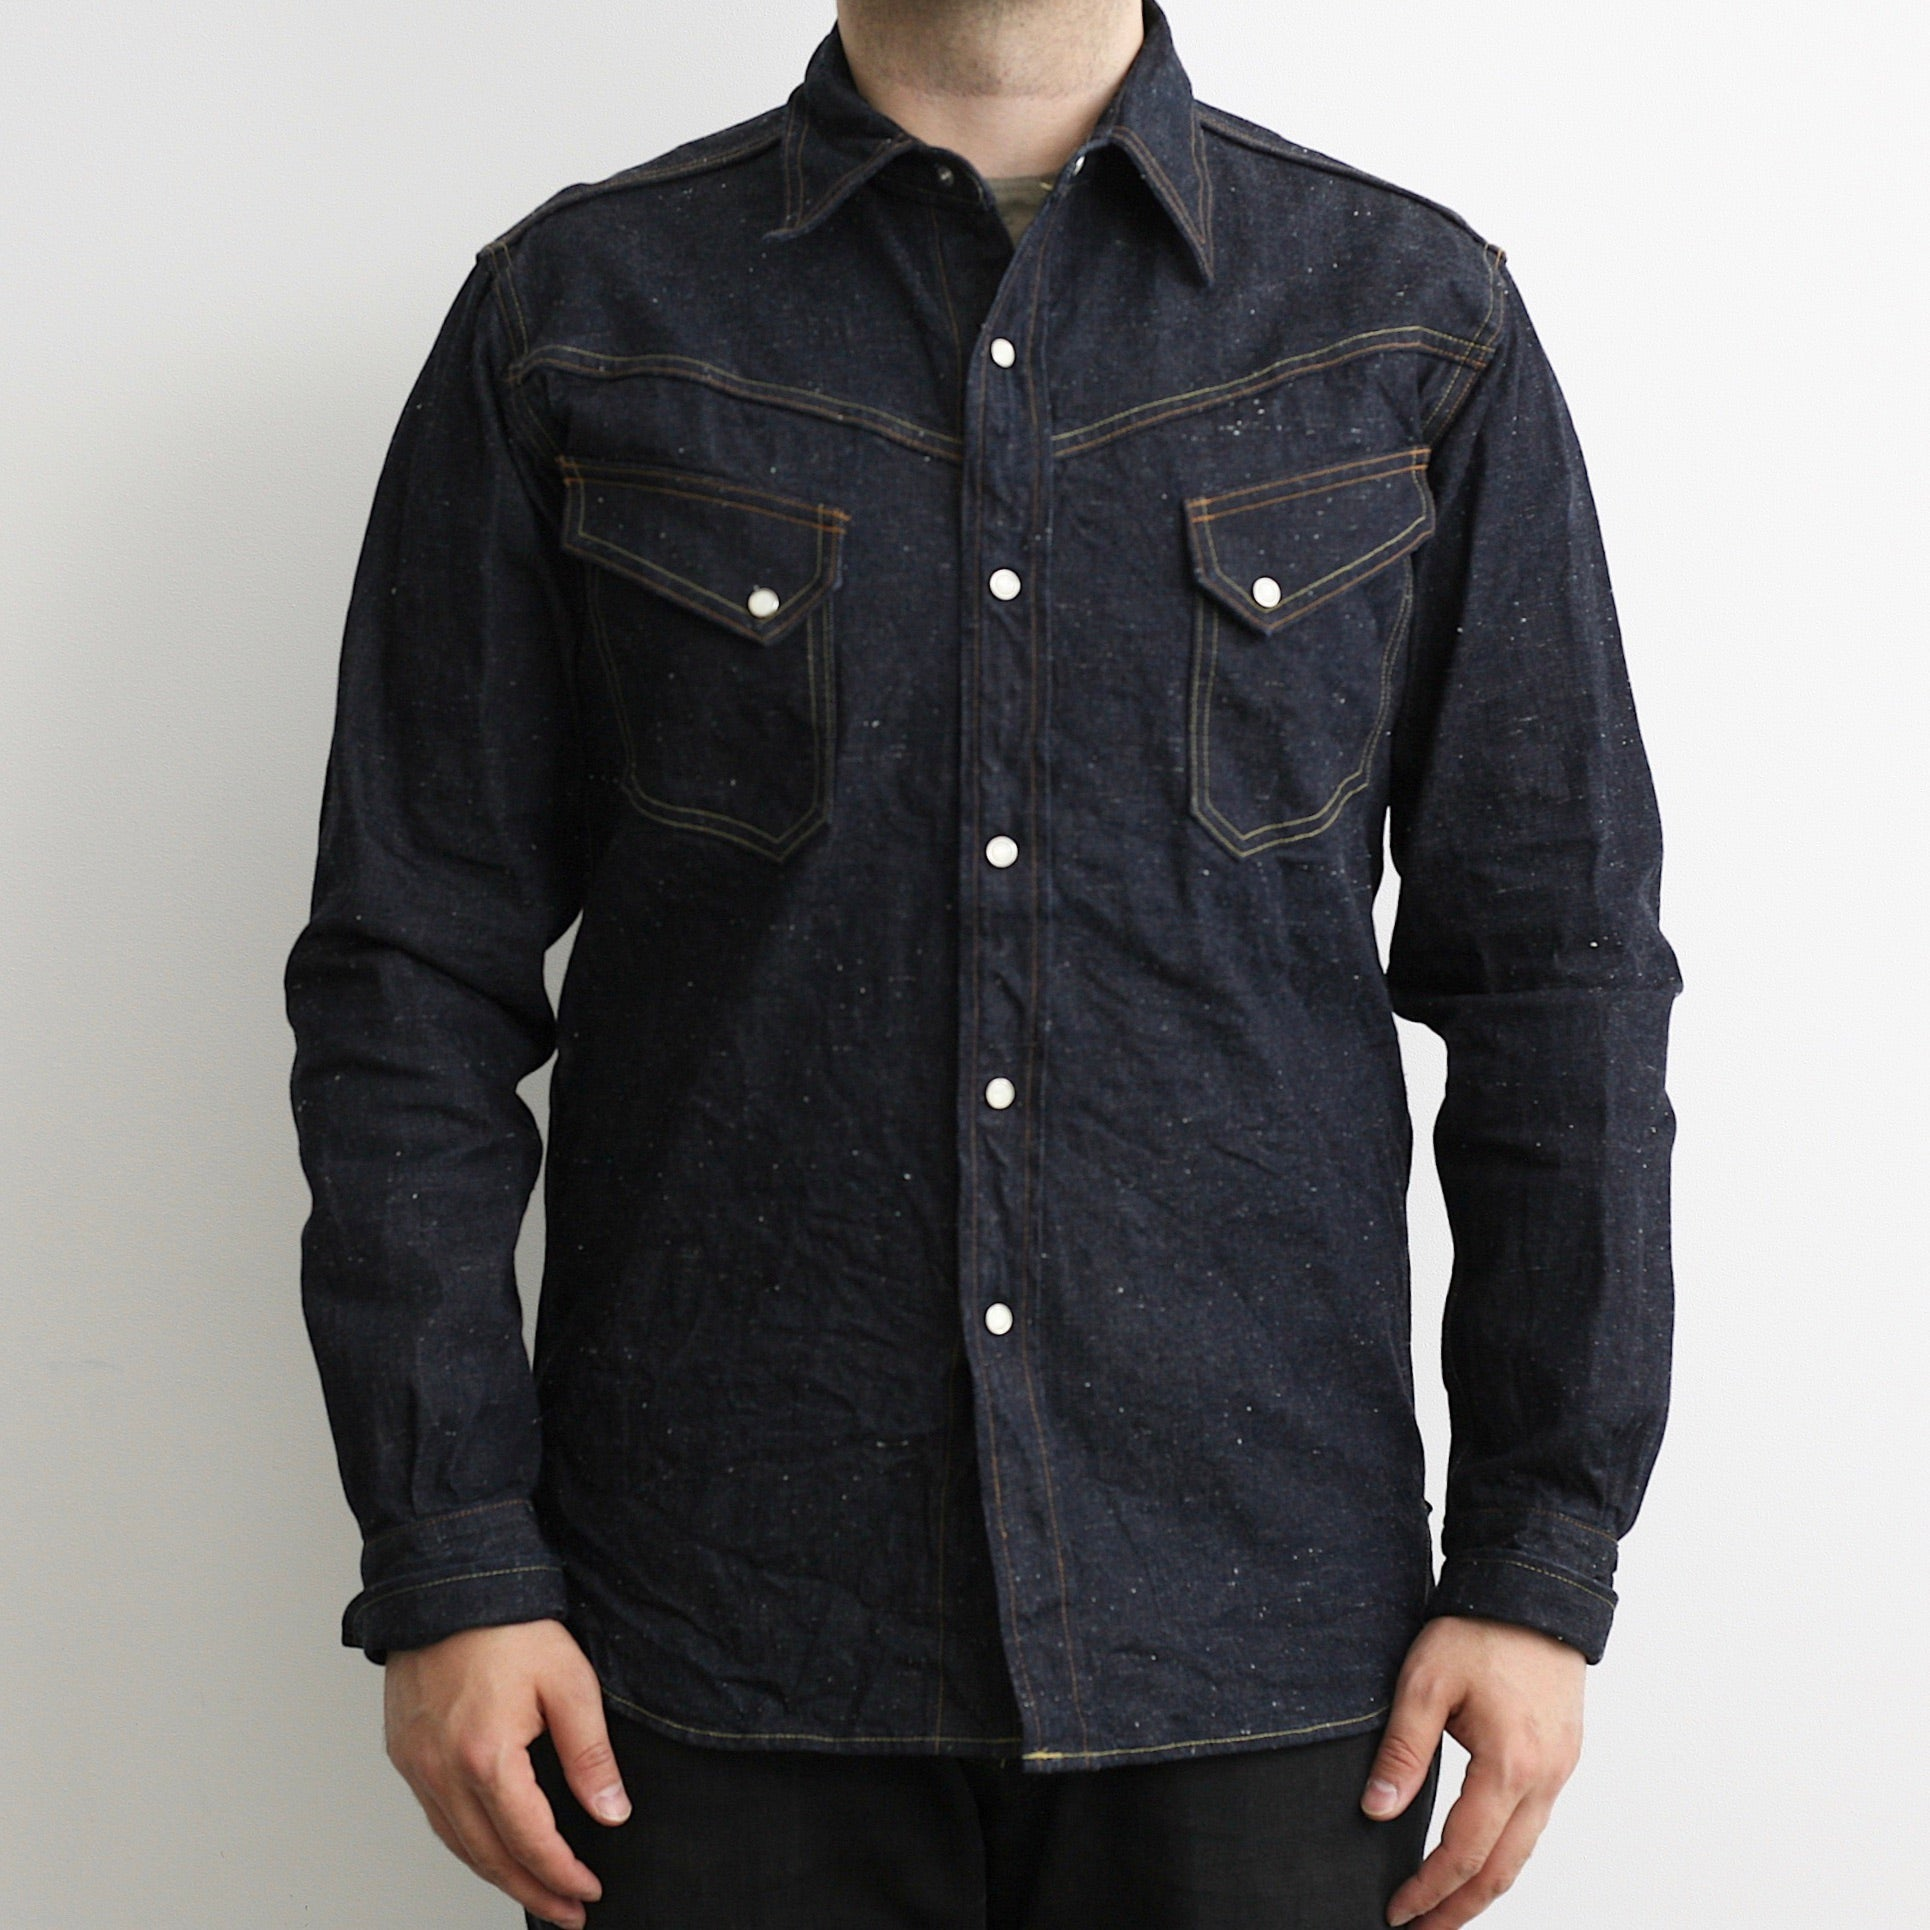 Long Horn Type Western Shirt in 9oz. Indigo Nep Selvedge Denim